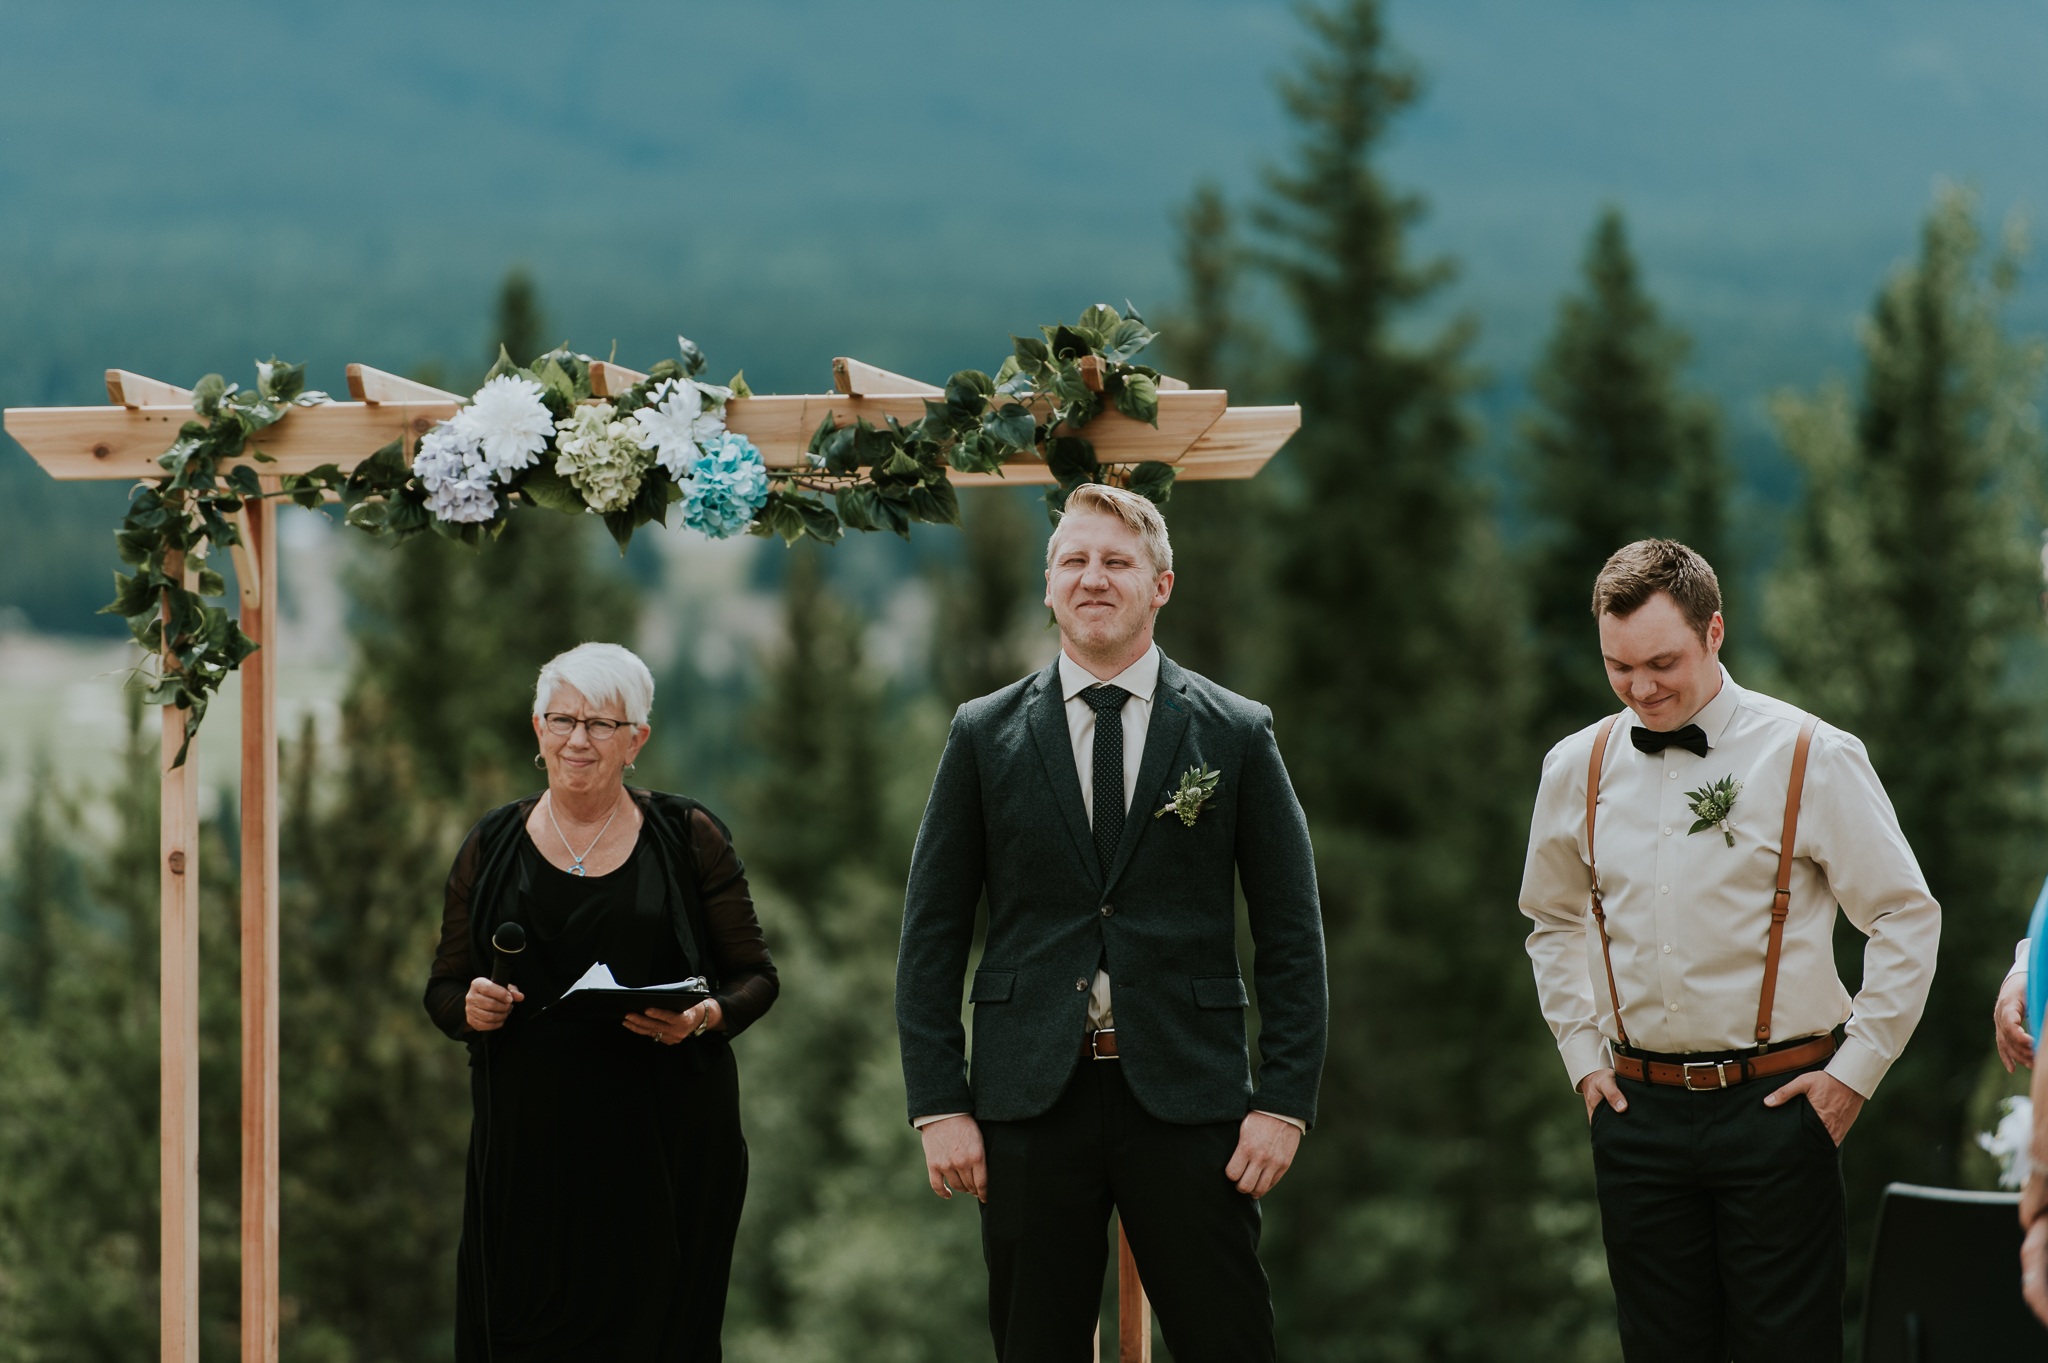 Groom's first look at bride walking down aisle at Delta Kananaskis wedding